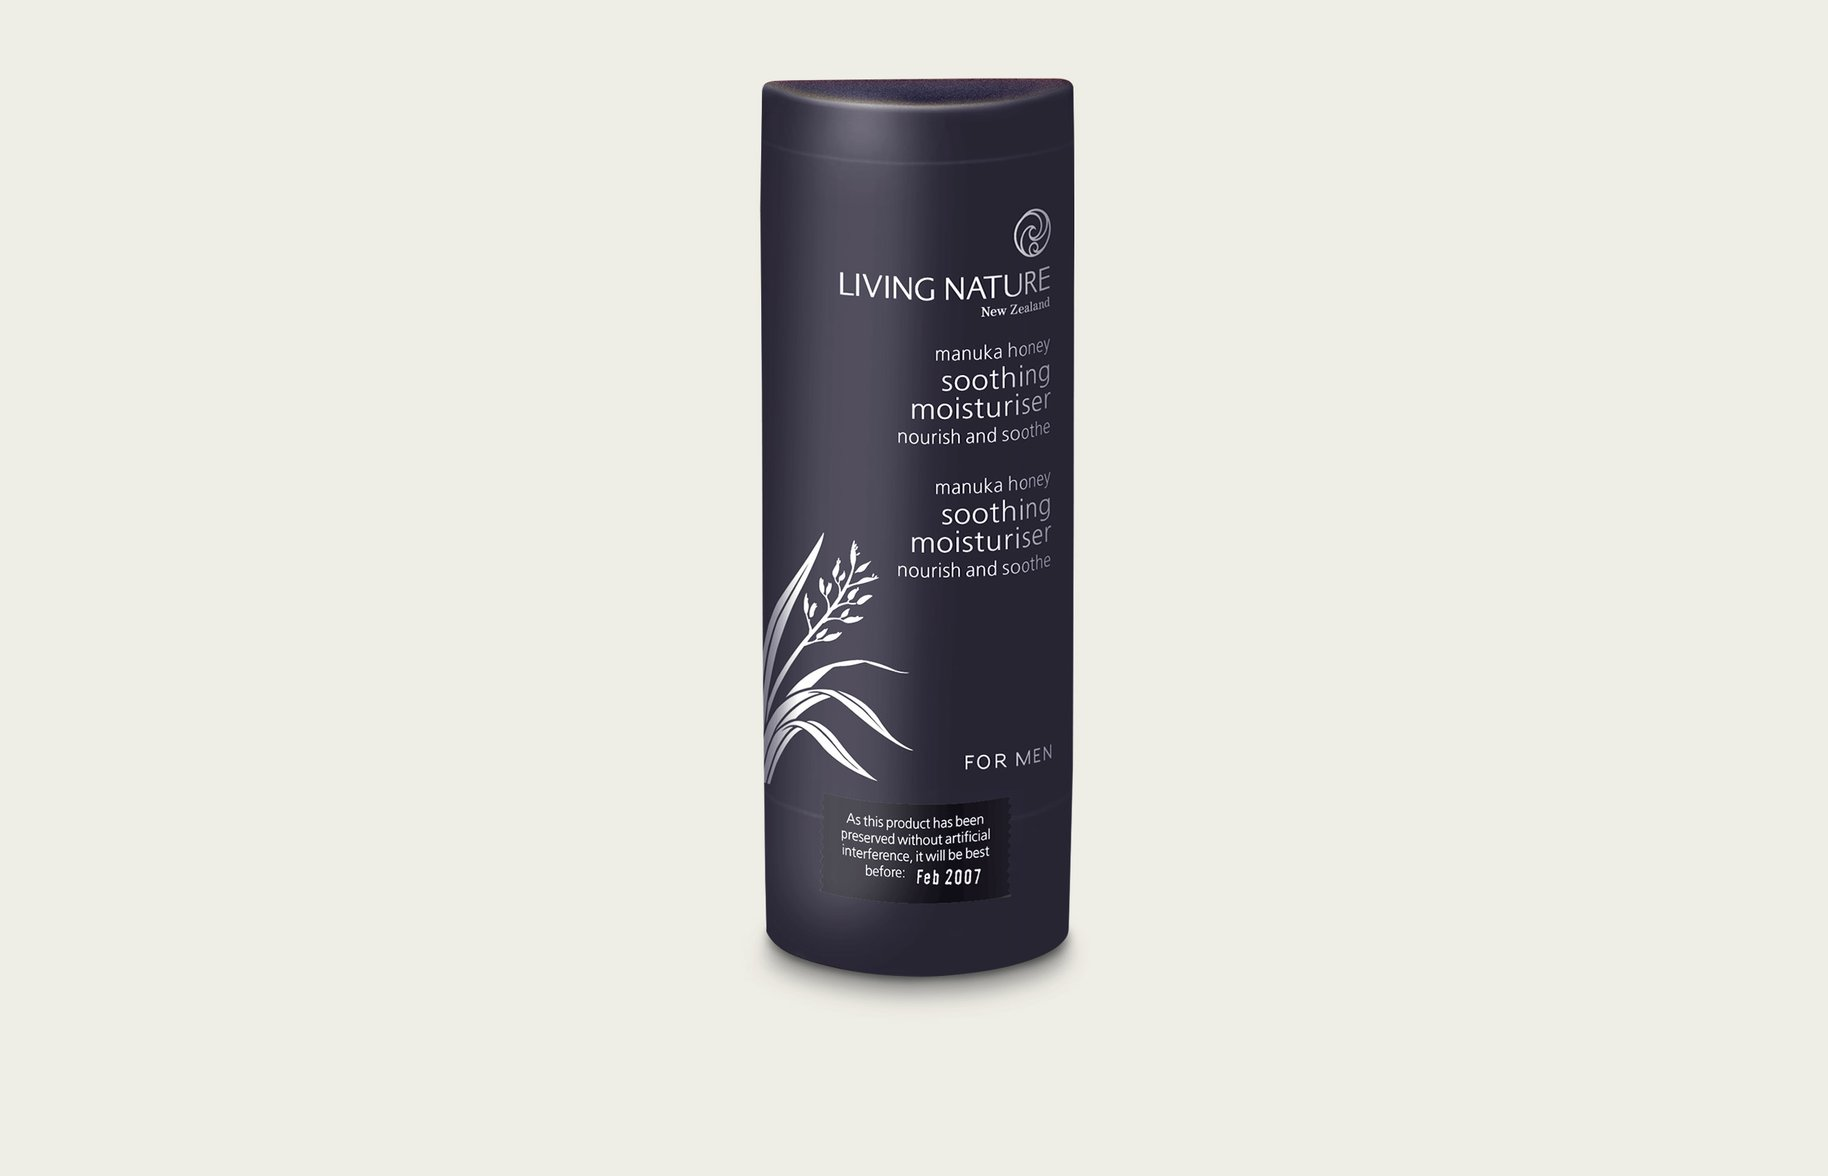 Living Nature soothing moisturiser for men packaging